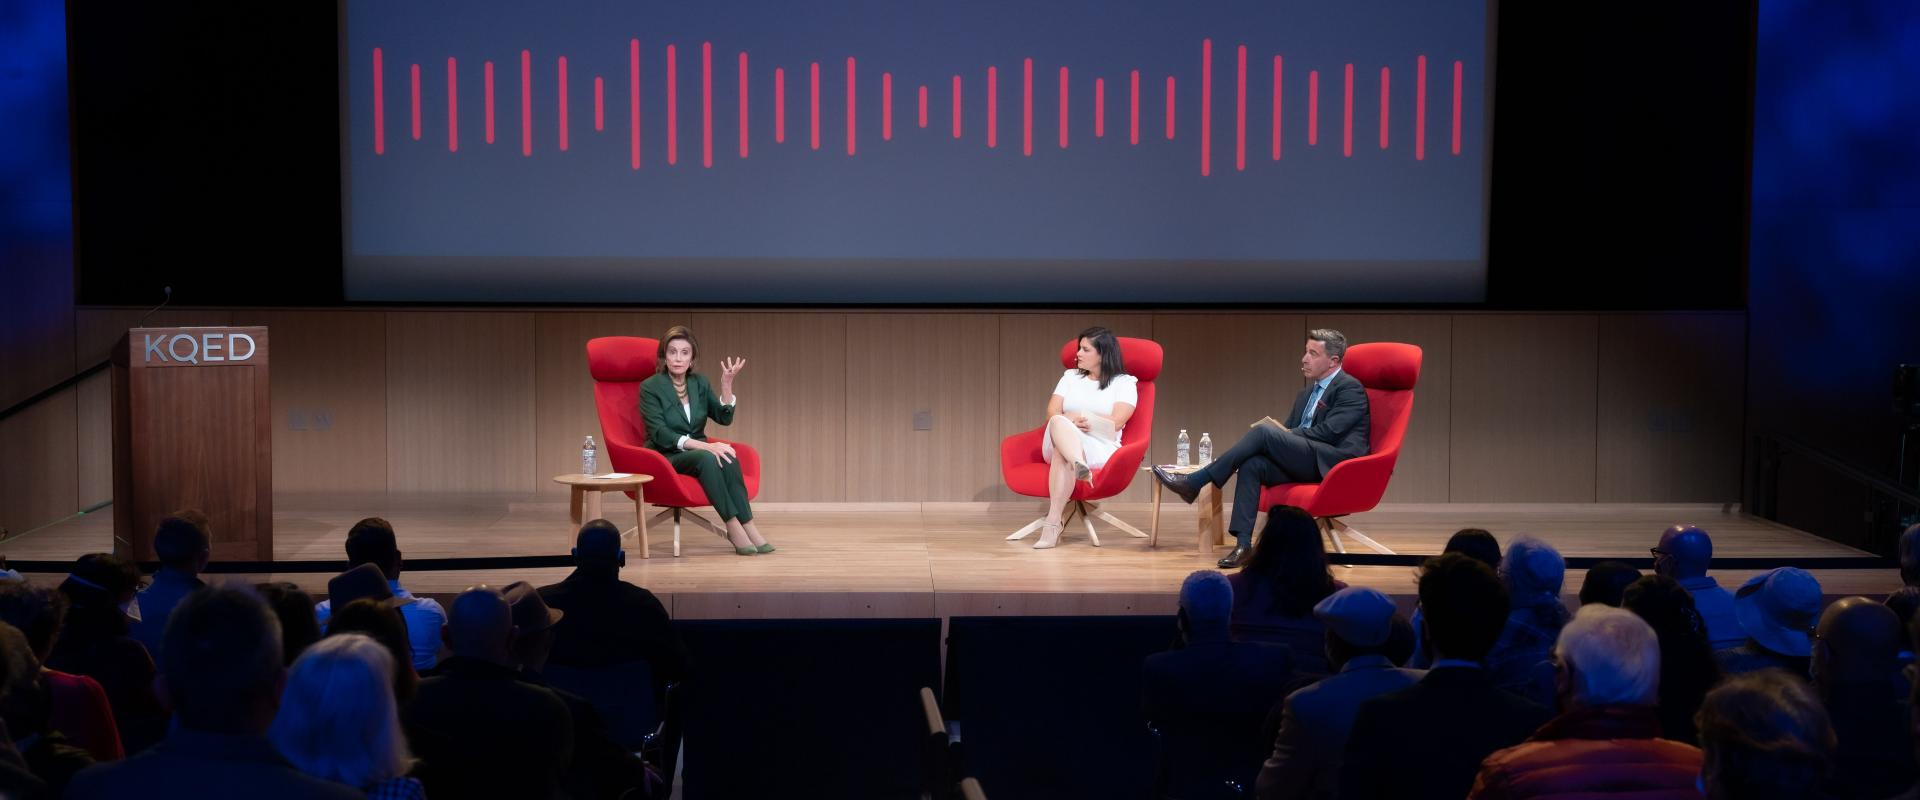 Congresswoman Pelosi joins Scott Shafer and Marisa Lagos for a moderated conversation with KQED's Live Fall program discussing the latest developments in Washington, 34 years representing San Francisco, her leadership in Congress, and advice for women in